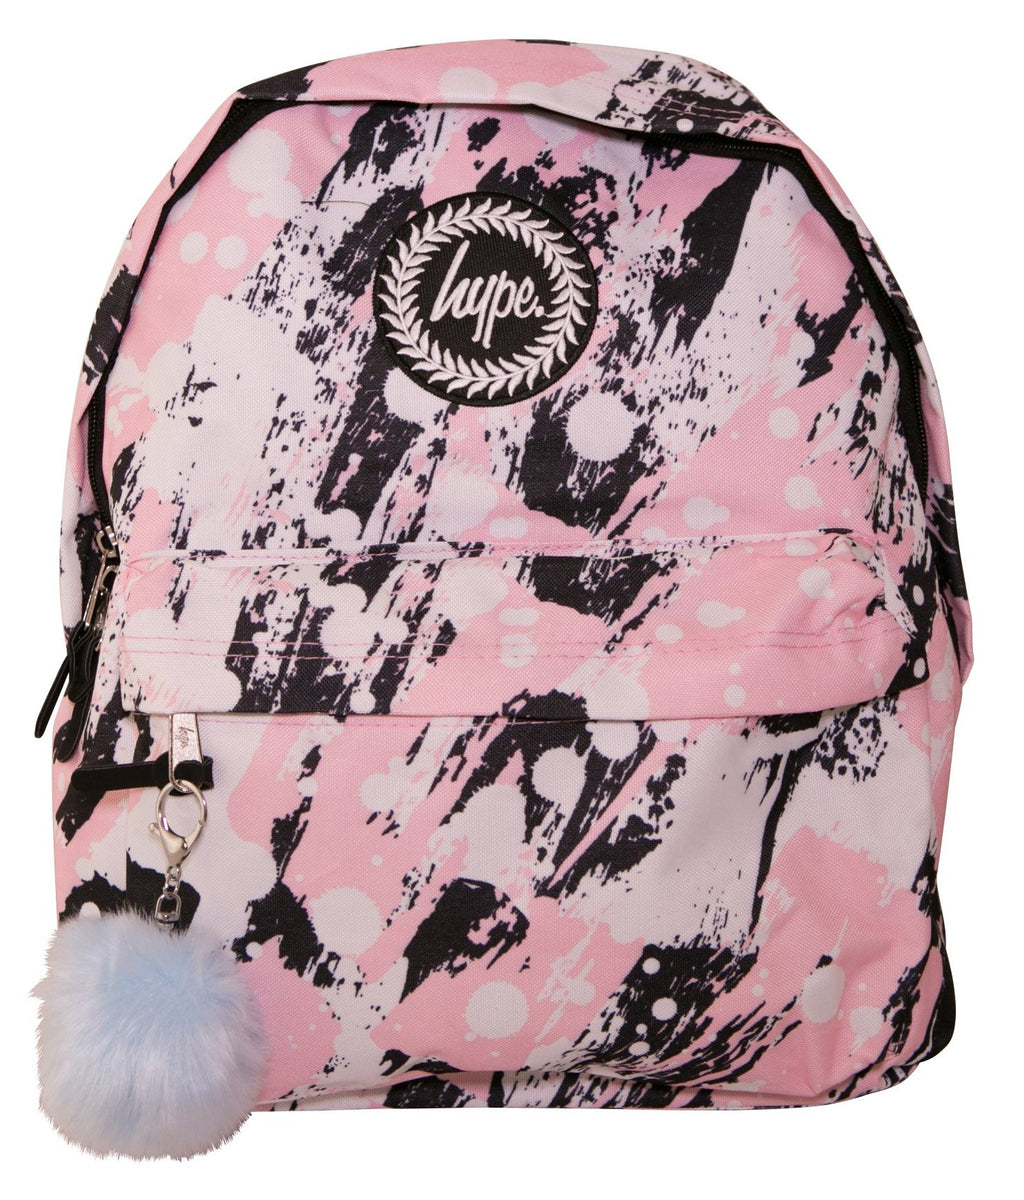 HYPE PINK BRUSHED BACKPACK RUCKSACK BAG - MULTI